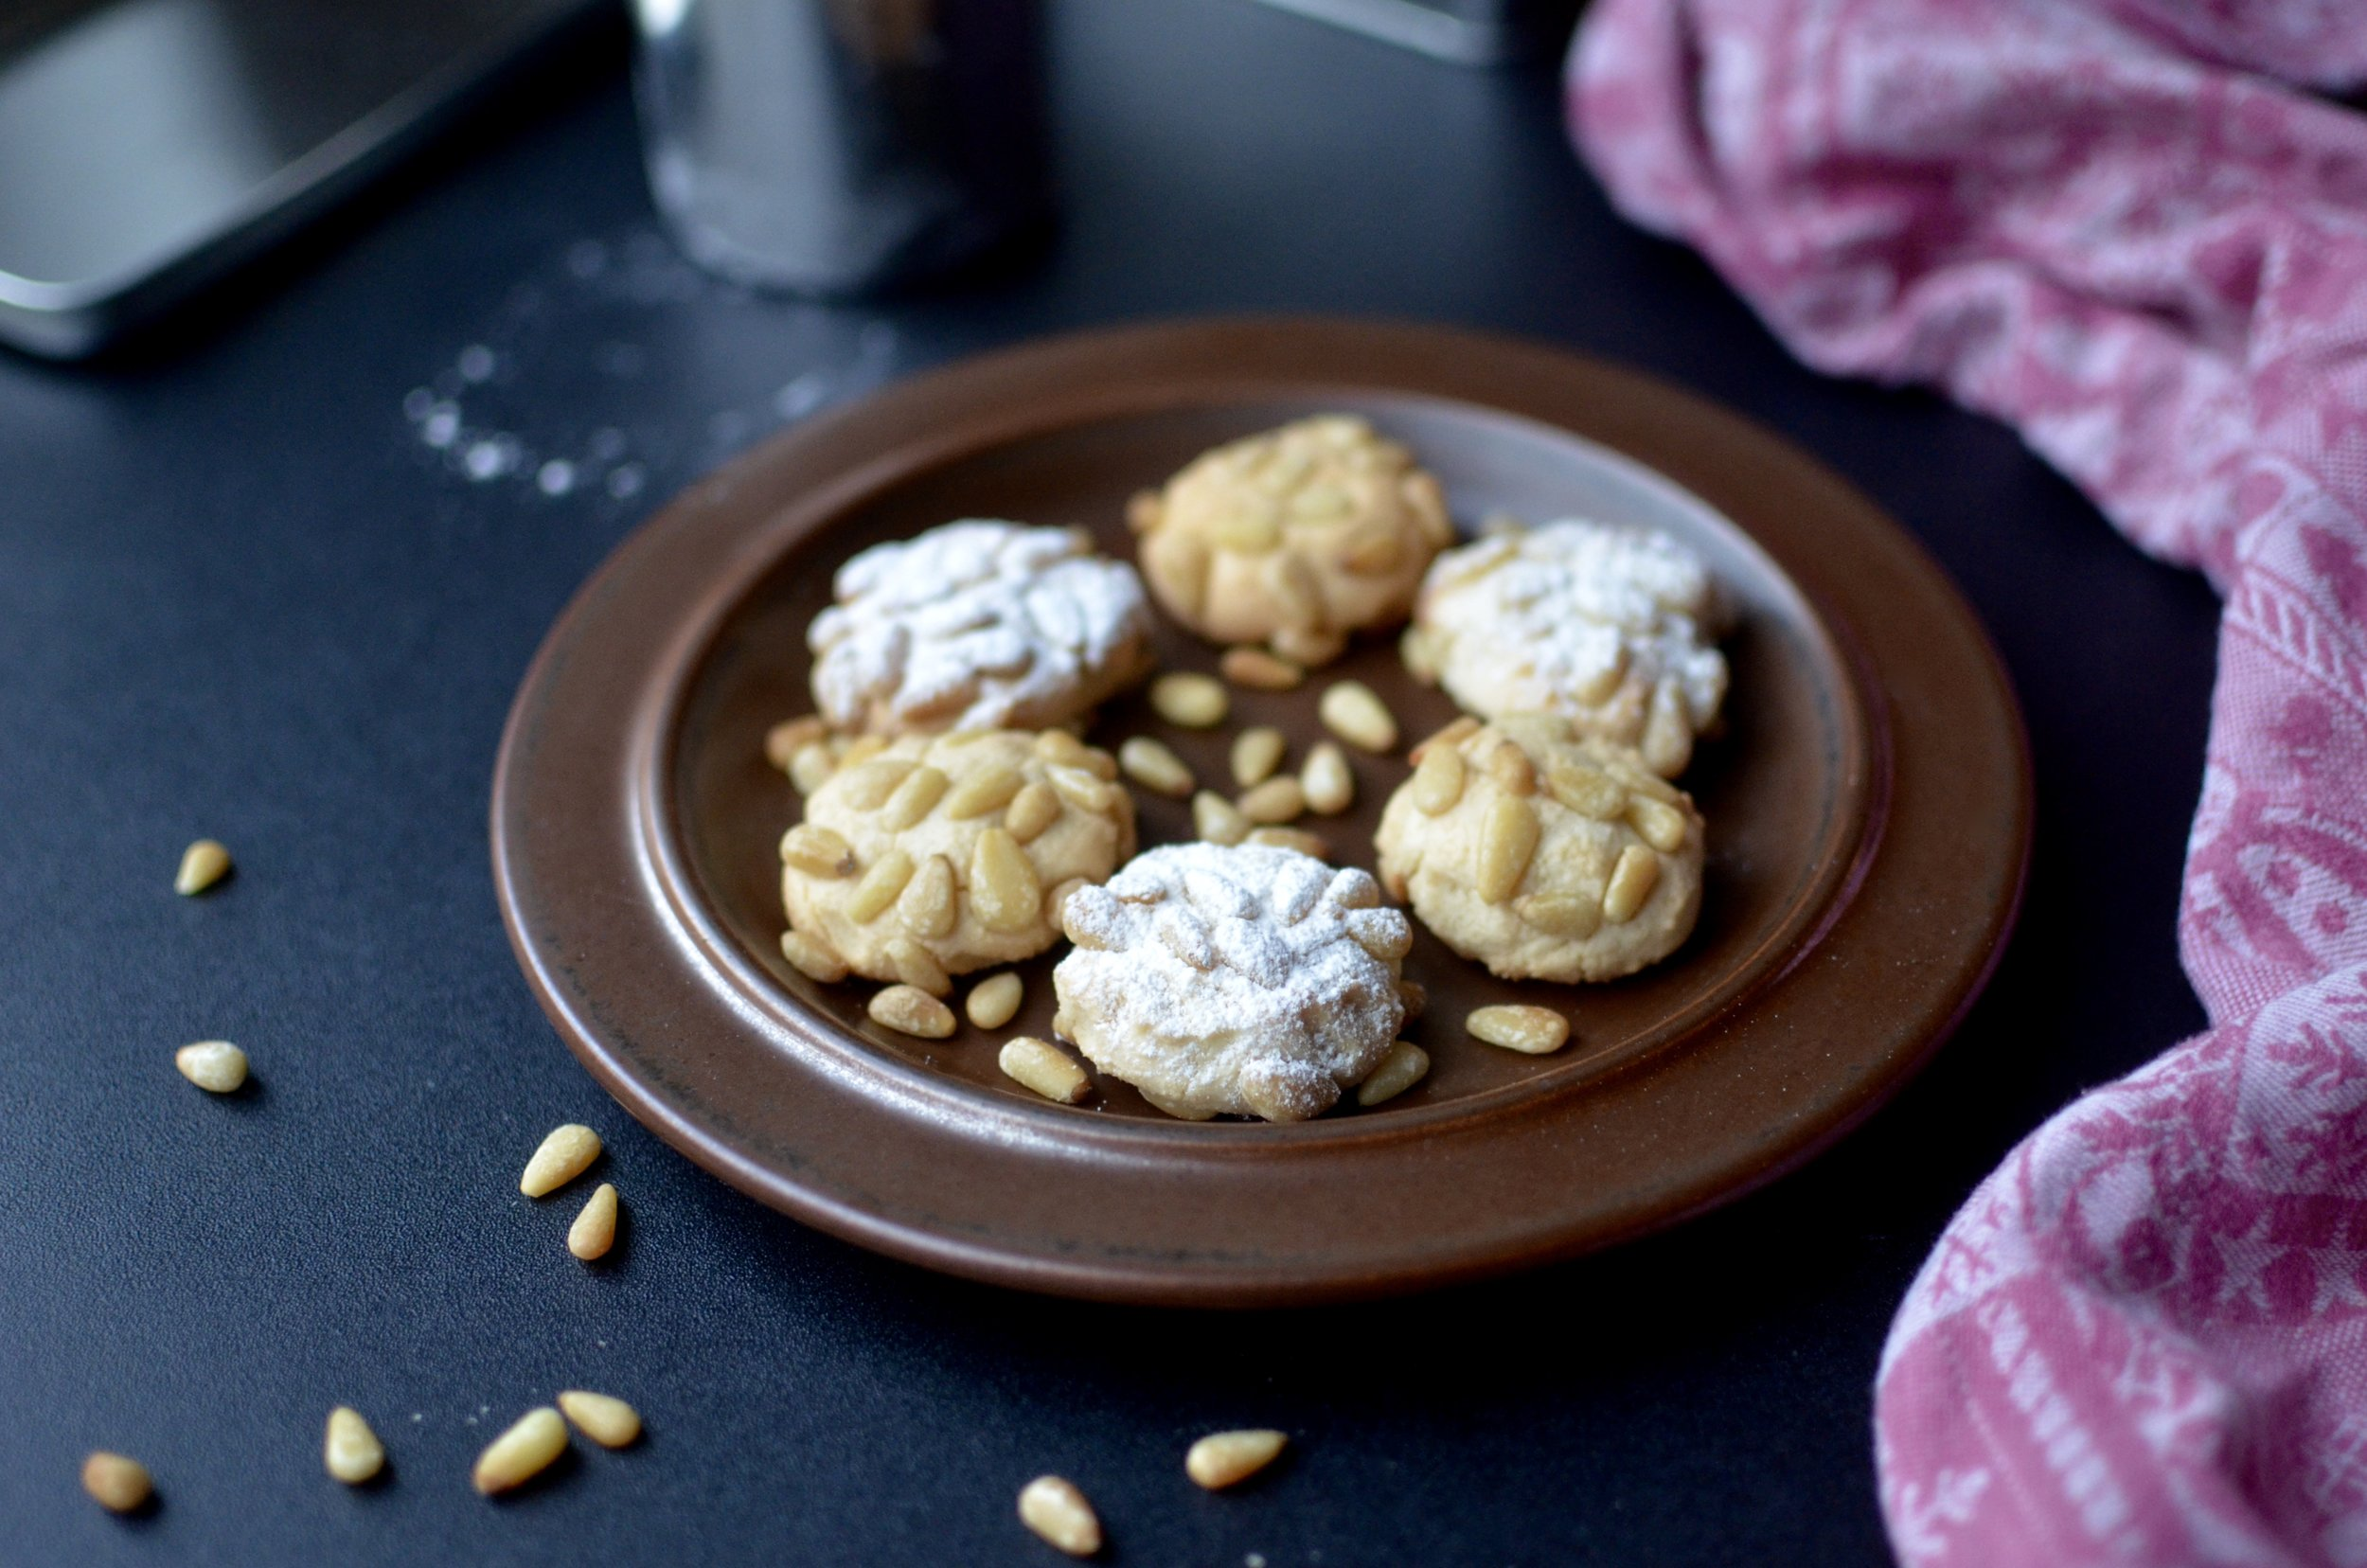 Italian Pine Nut Cookies - ButterYum. how to make pine nut cookies. how to make pignoli cookies. Italian cookie recipe with pine nuts. Italian cookie recipe. how to bake Italian bakery cookies at home. Pinoli cookie recipe. pignoli cookie recipe.